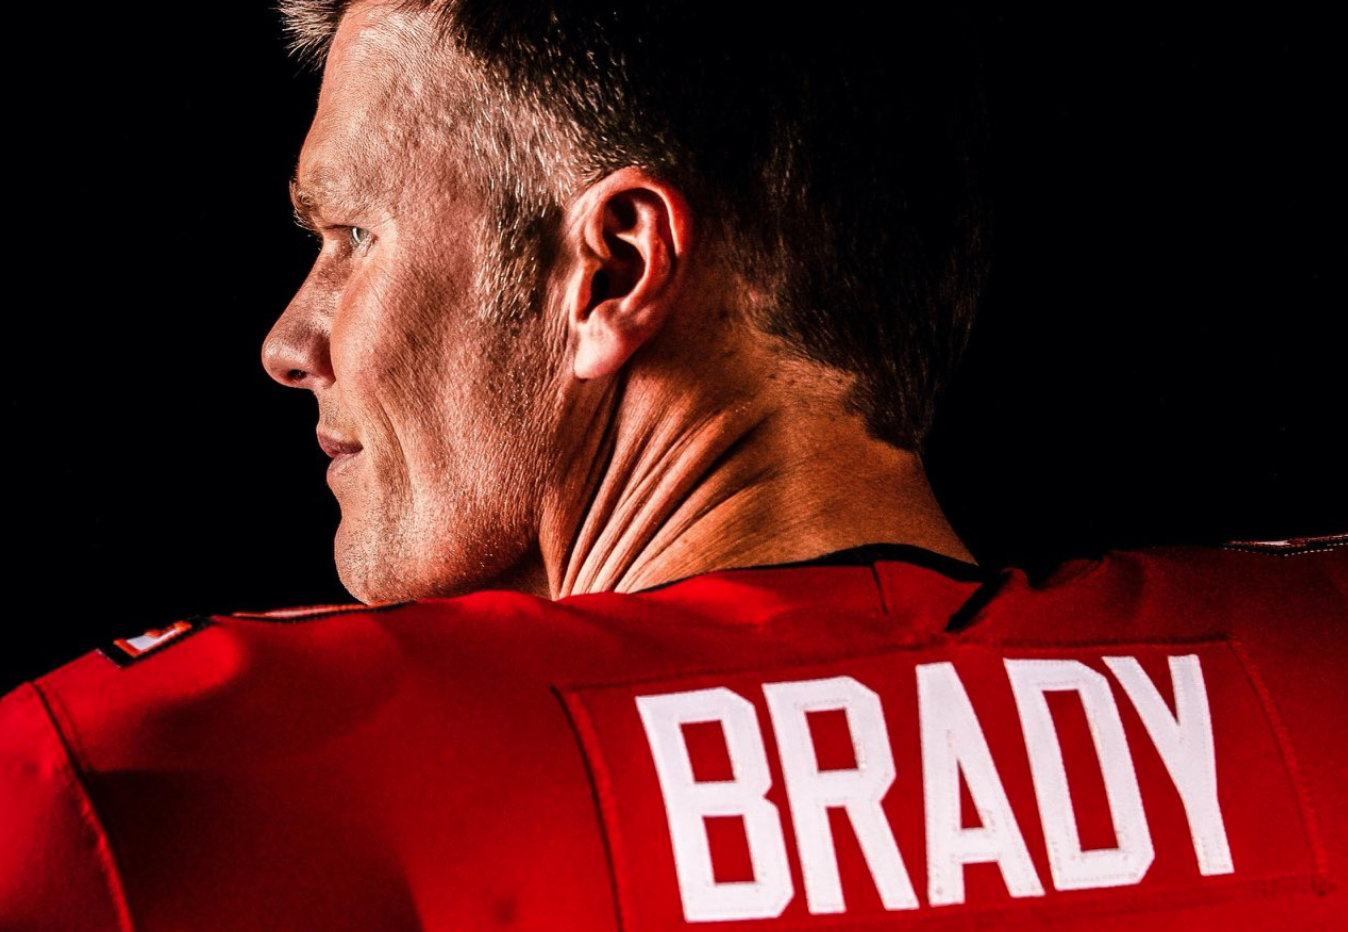 First Look Tampa Bay Buccaneers Reveal First Images Of A Fully Kitted Tom Brady Essentiallysports In 2020 Tampa Bay Buccaneers Tom Brady Buccaneers